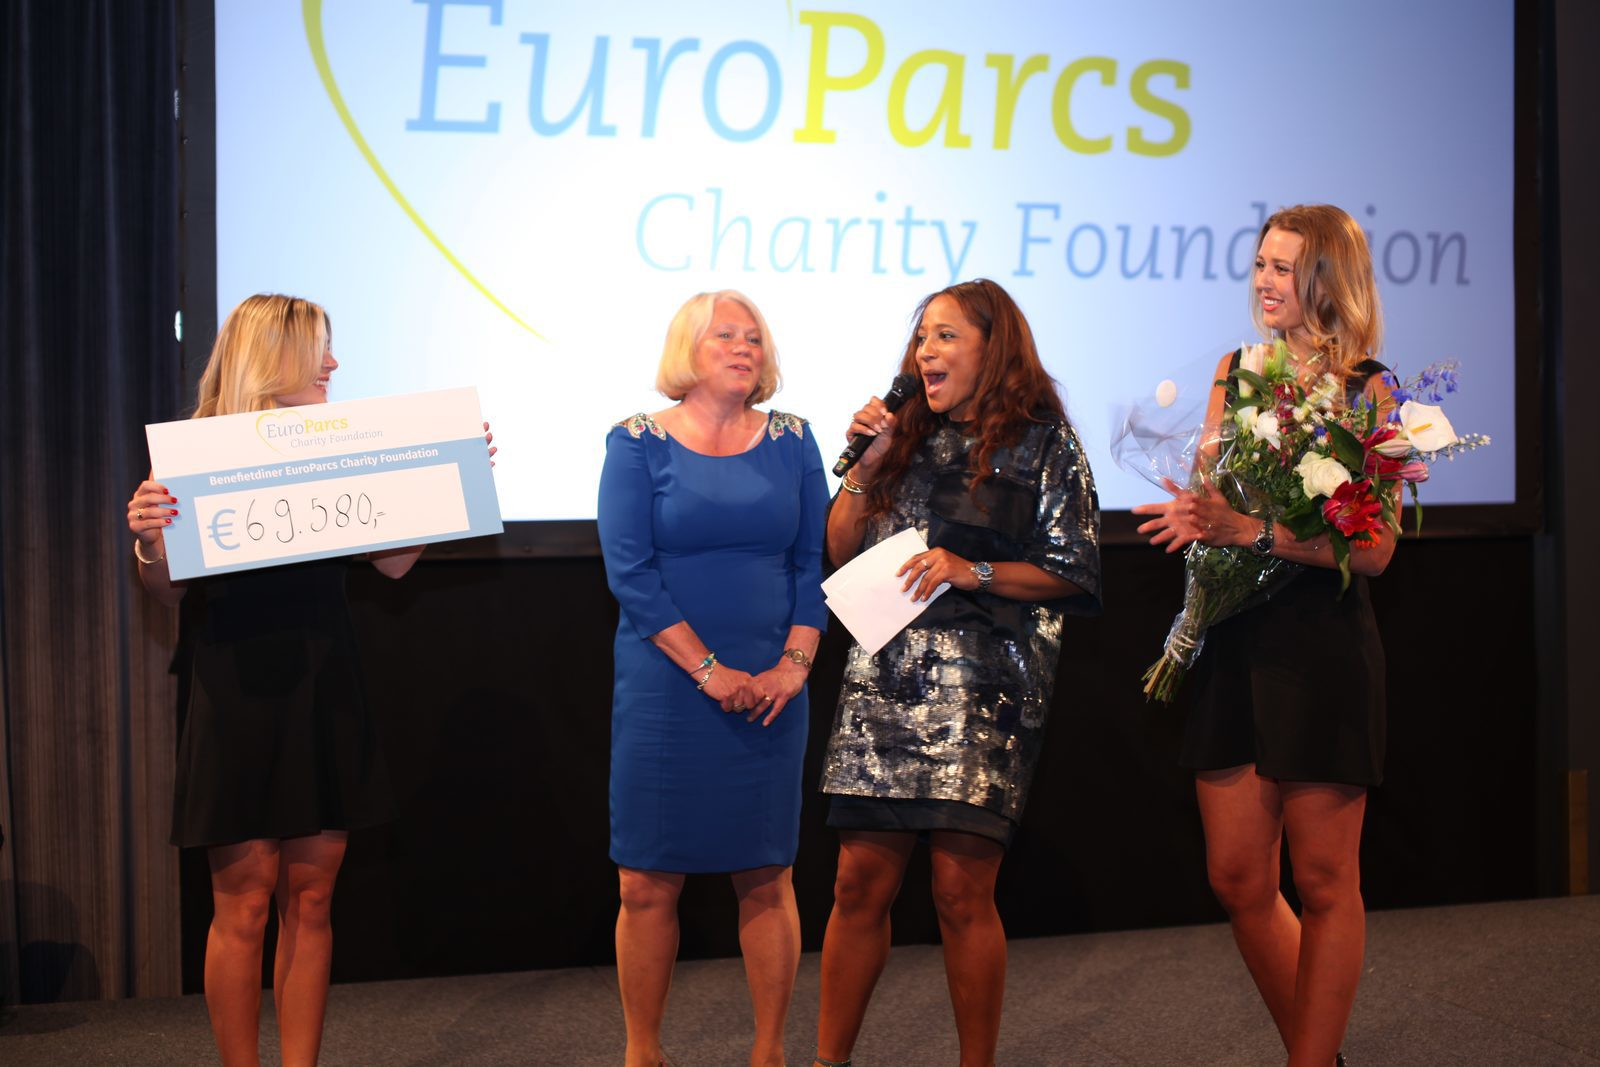 Meerwaarde EuroParcs Charity Foundation is voor EuroParcs helder